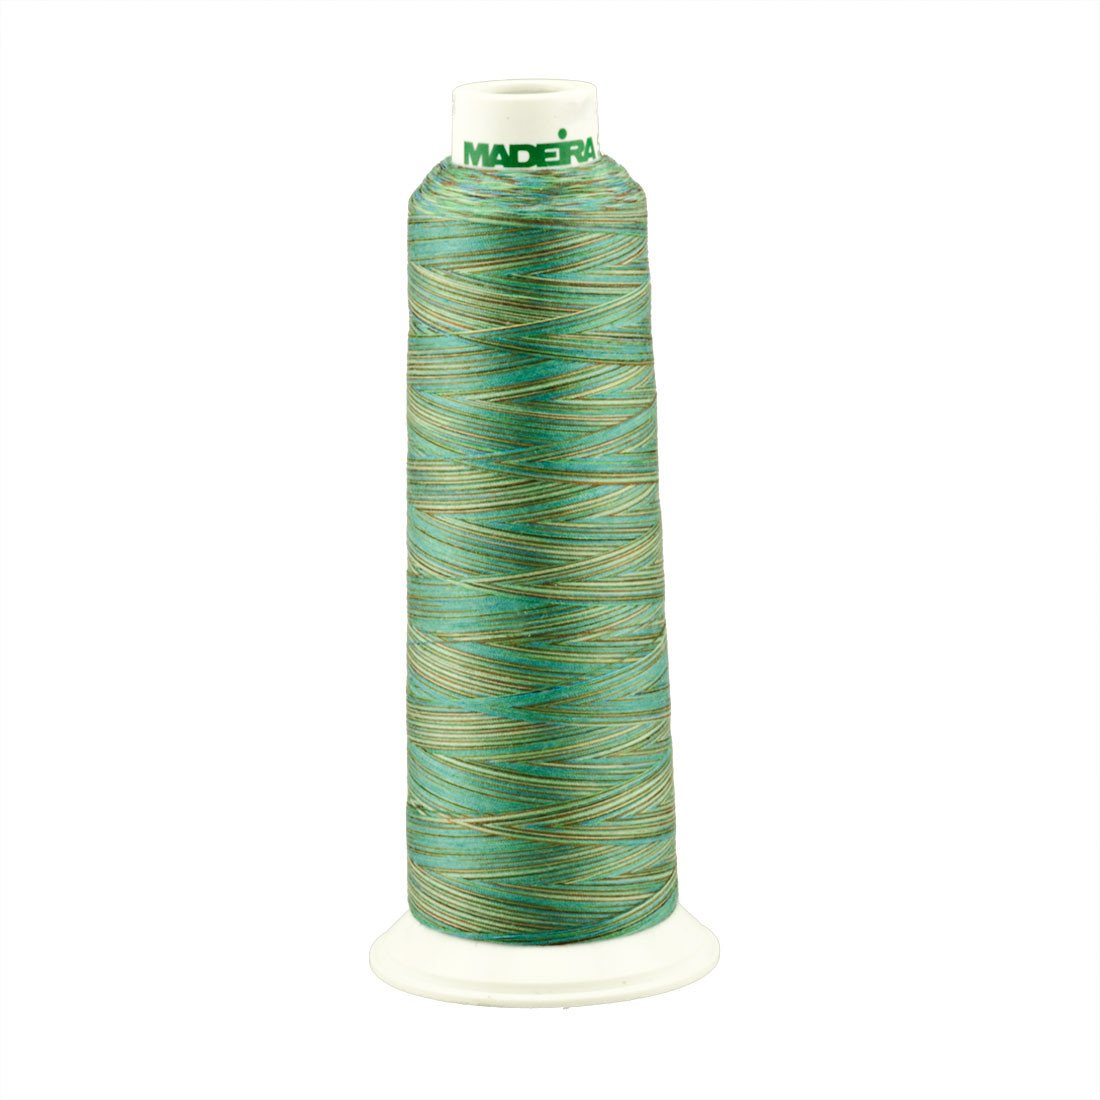 Madeira Jungle Meadow Aeroquilt 3000 Yard Cone Variegated 91309608